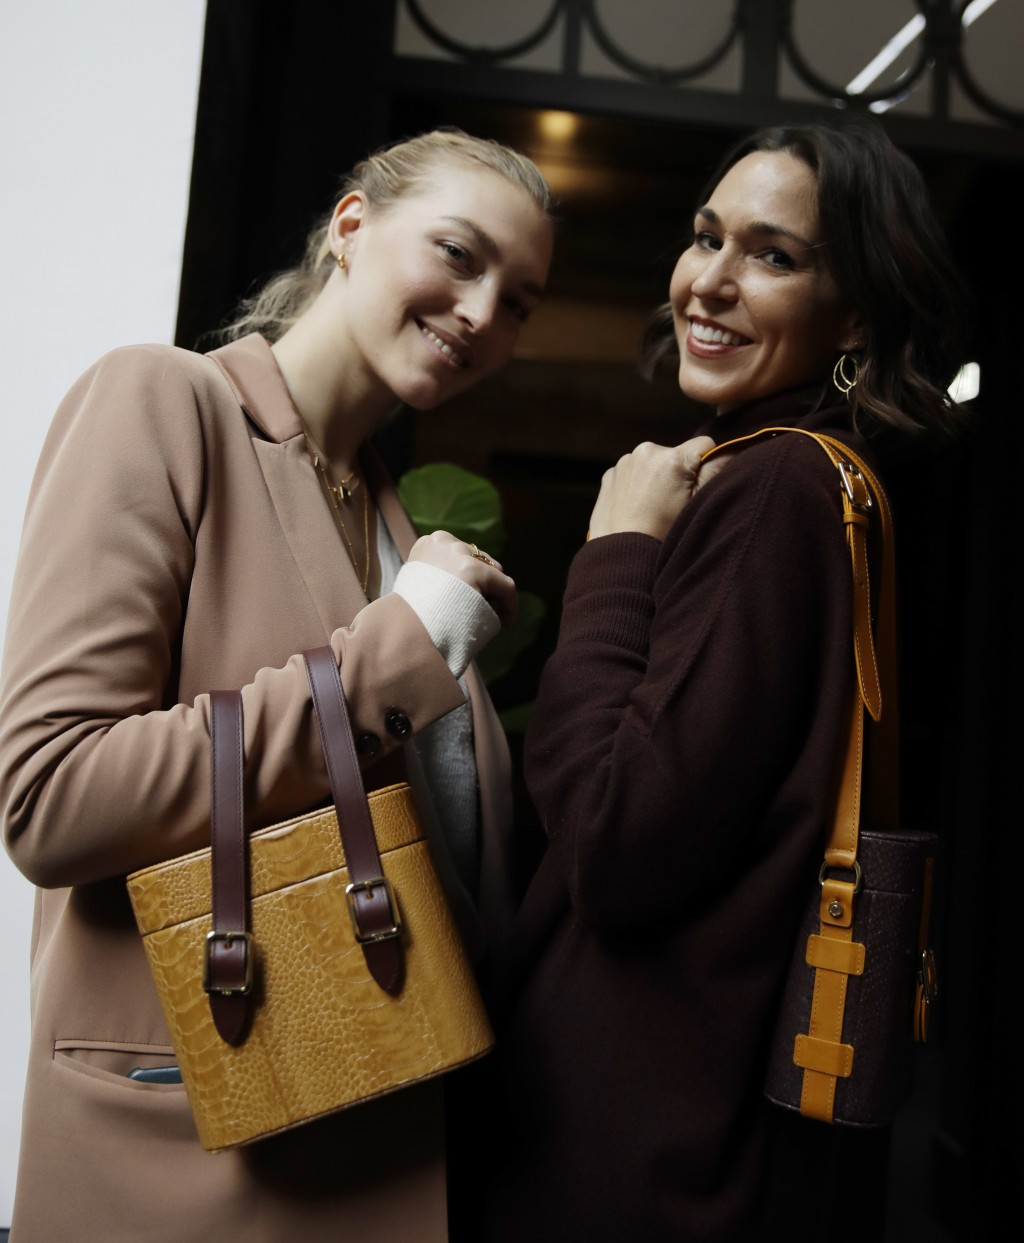 FILE - In this Feb. 24, 2019 file photo, model Arizona Muse, left, is flanked by designer and Officina del Poggio owner Allison Hoeltzel Savini as the...